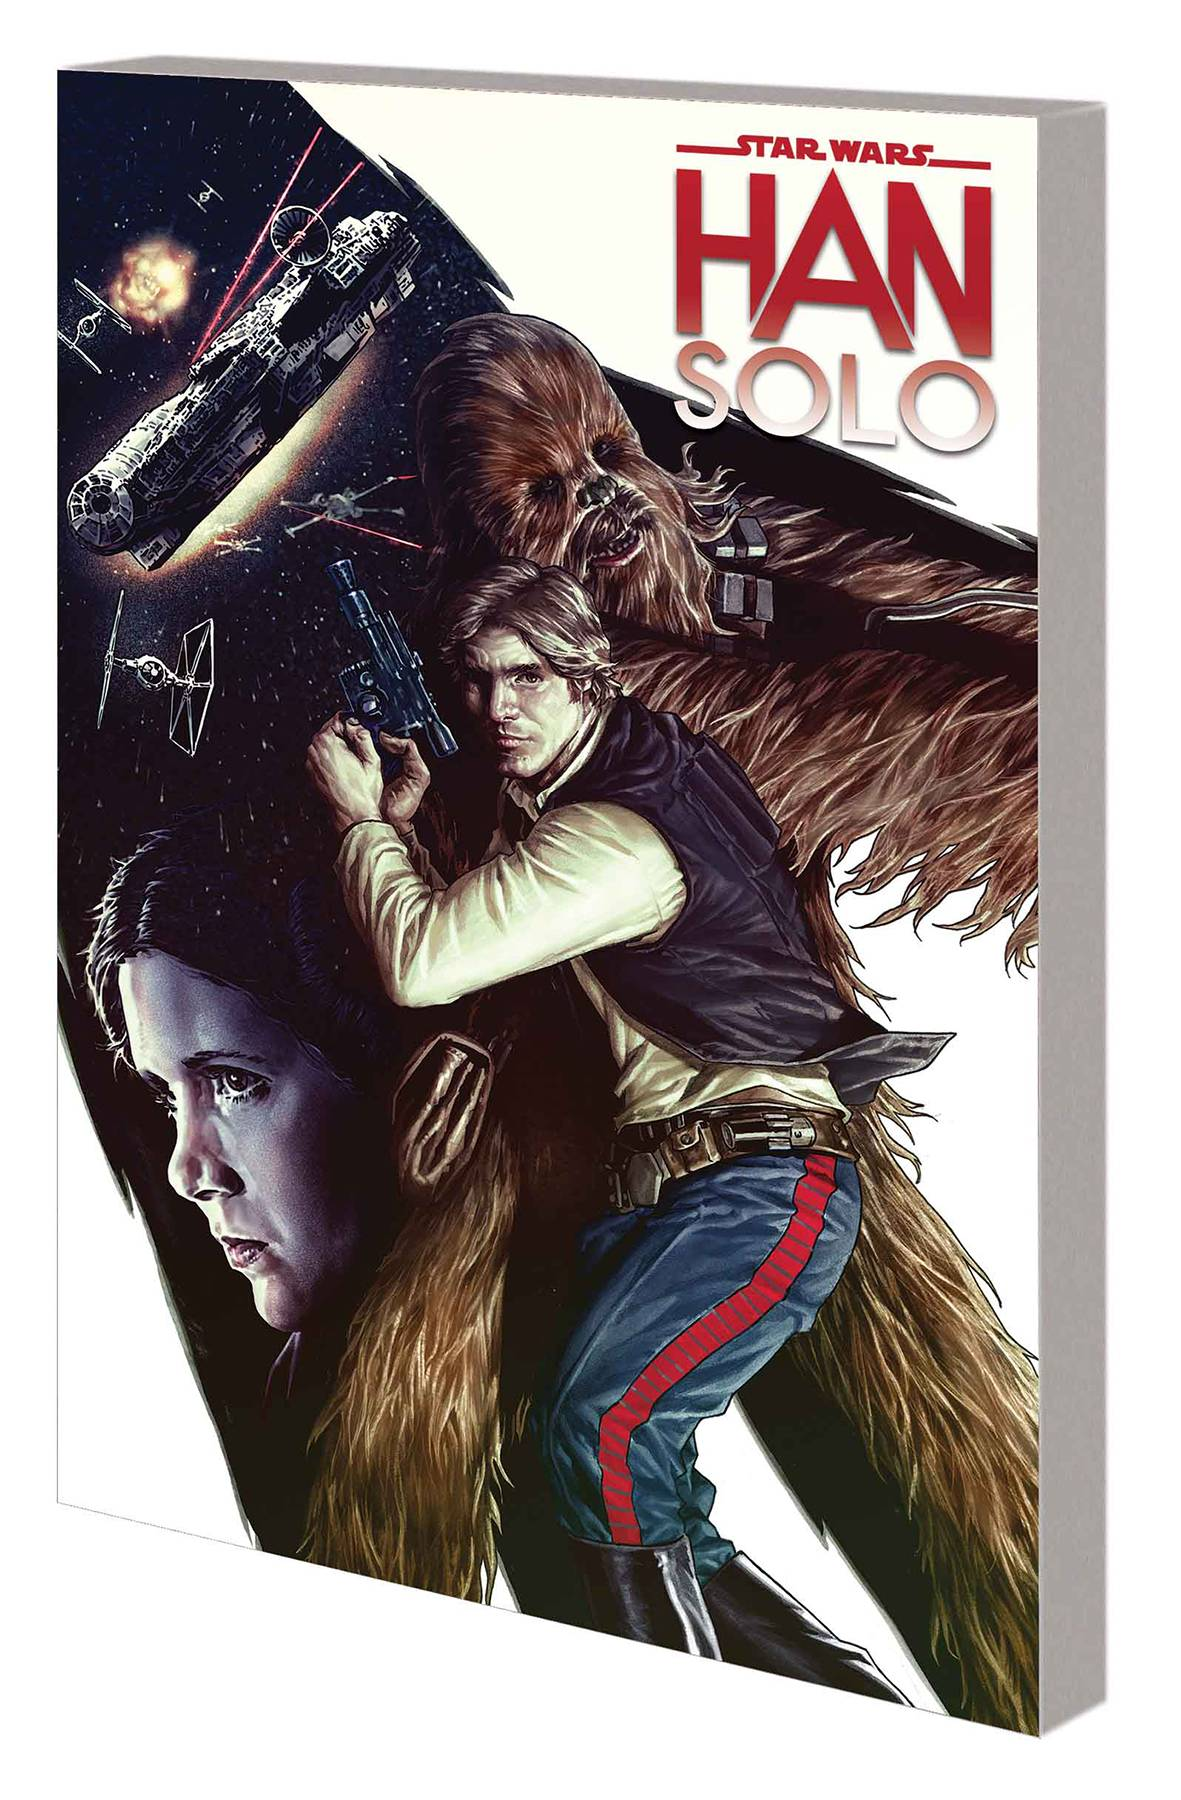 STAR WARS HAN SOLO TP | Digital Heroes